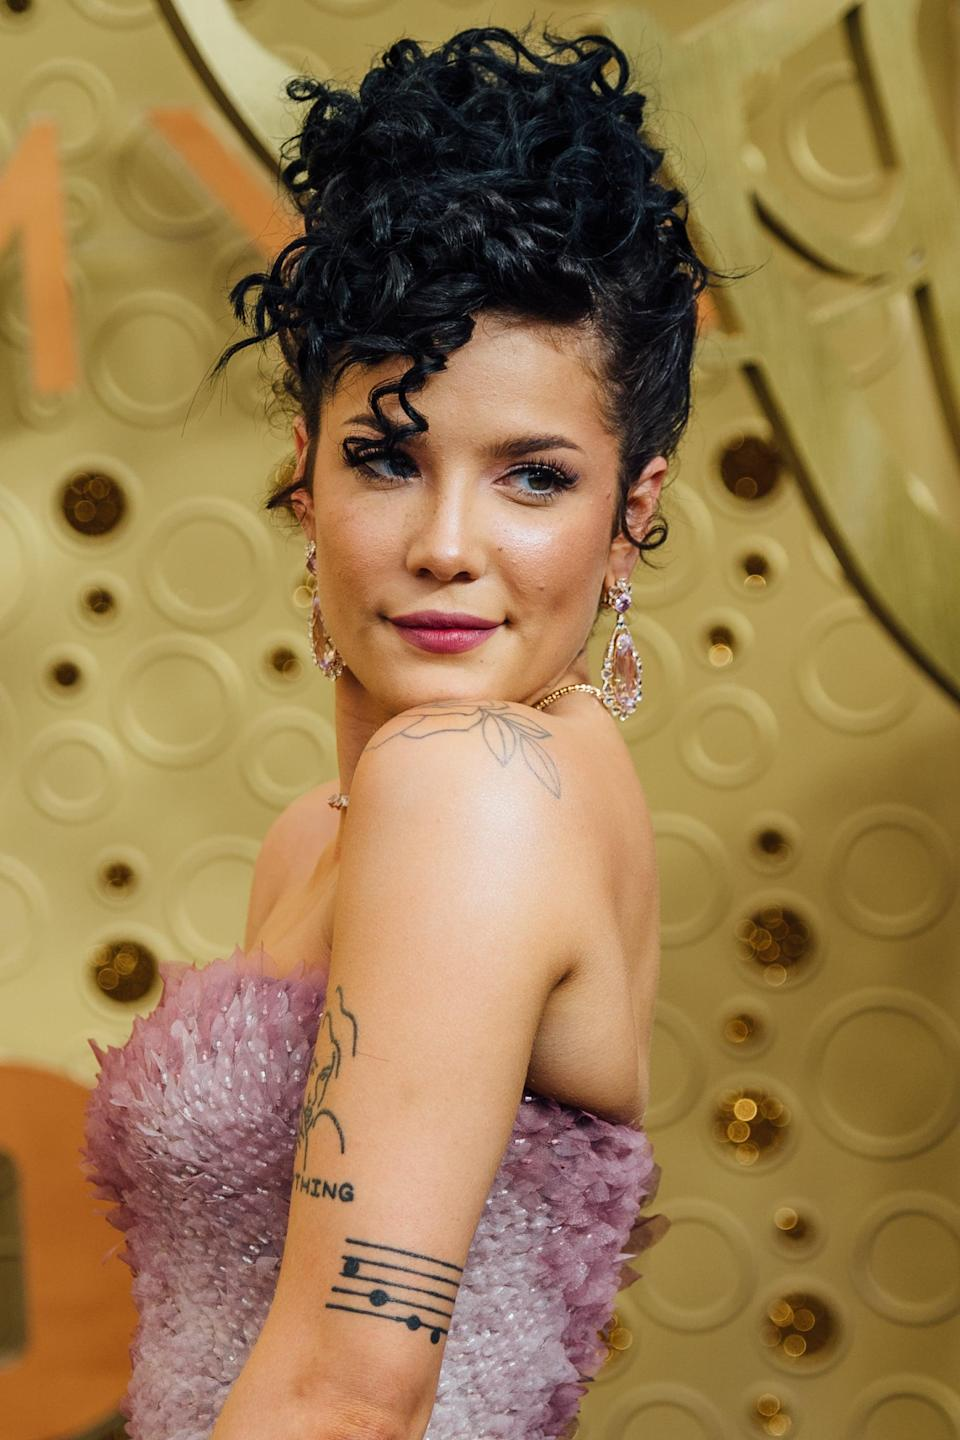 "<p>It's speculated that <a href=""https://www.cosmopolitan.com/entertainment/celebs/g28869337/halsey-tattoos-meaning/?slide=13"" class=""link rapid-noclick-resp"" rel=""nofollow noopener"" target=""_blank"" data-ylk=""slk:the music sheet tattoo"">the music sheet tattoo</a> on the back of Halsey's arm is for producer Lido. </p>"